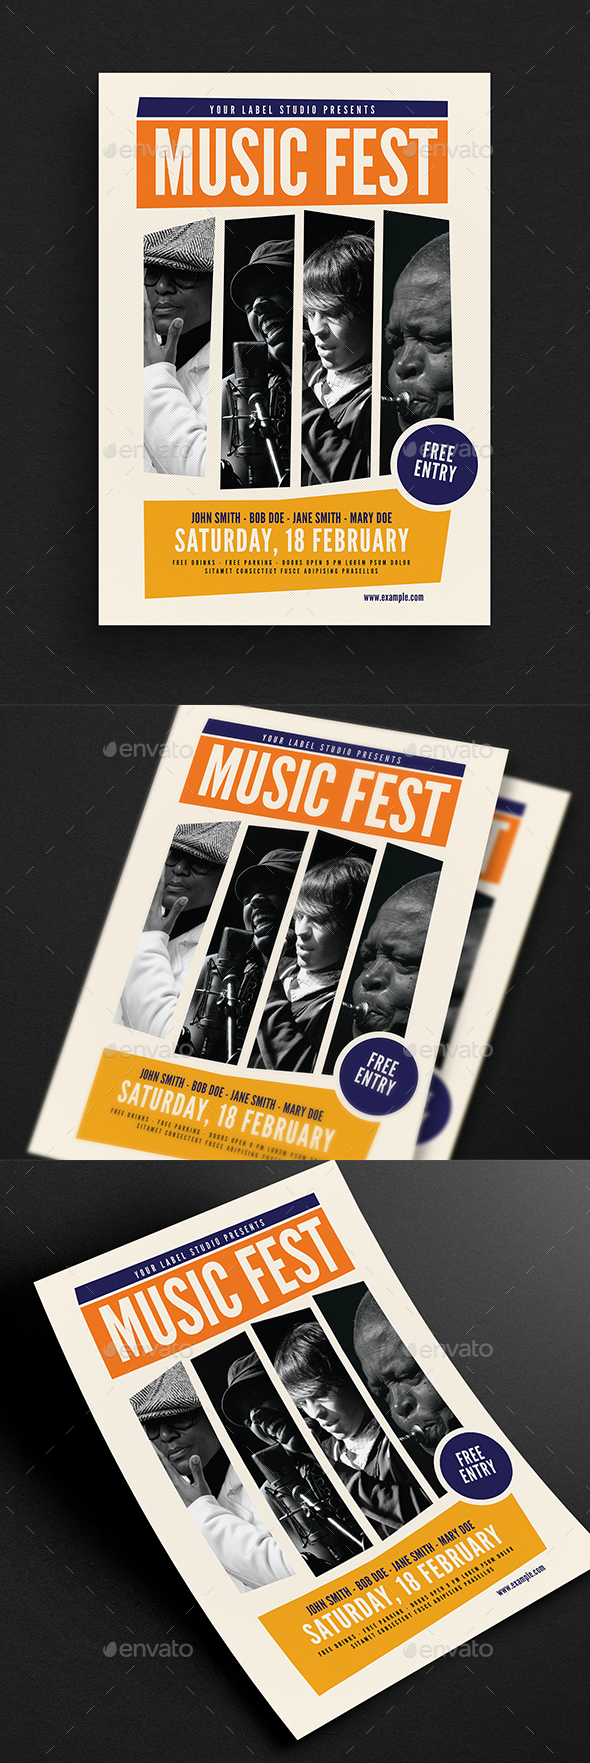 Music Fest Flyer - Events Flyers